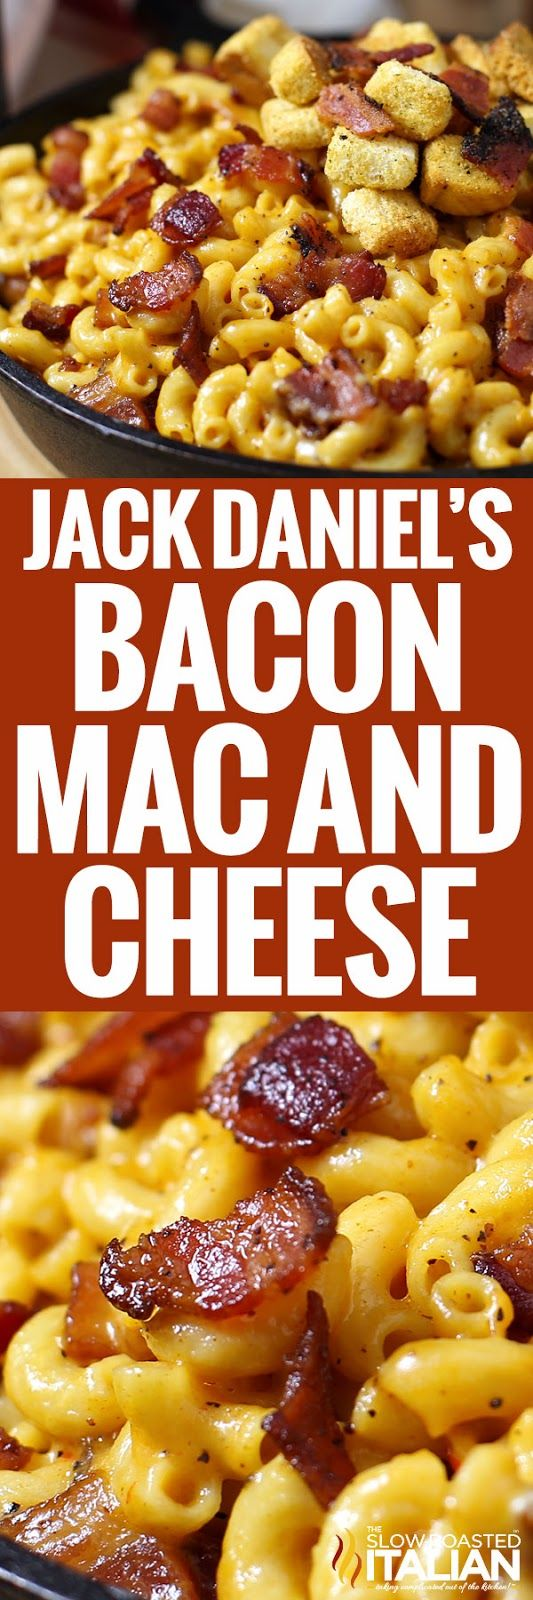 Jack Daniel's Smoky Bacon Mac and Cheese (With Video)